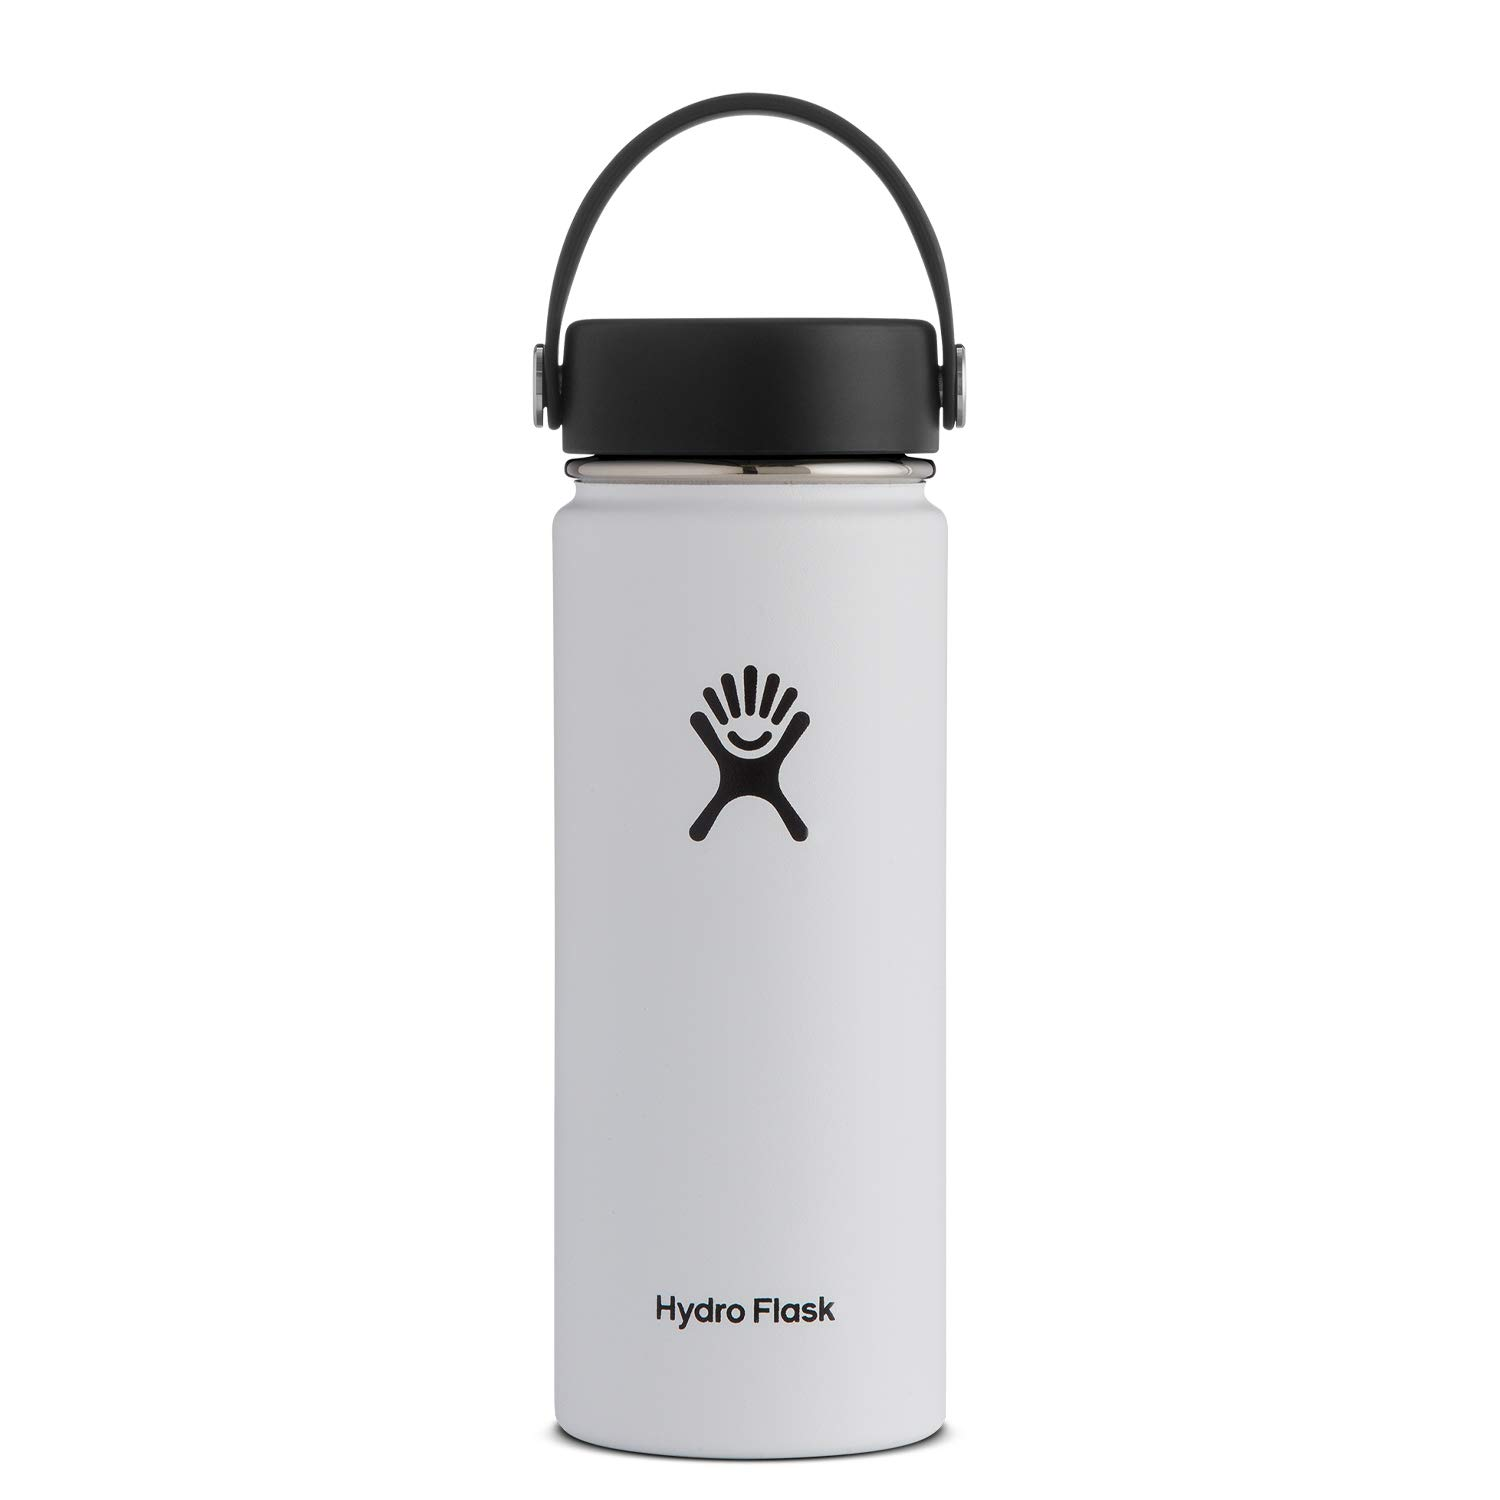 Hydro Flask Water Bottle - Stainless Steel & Vacuum Insulated - Wide Mouth with Leak Proof Flex Cap - 18 oz, White by Hydro Flask